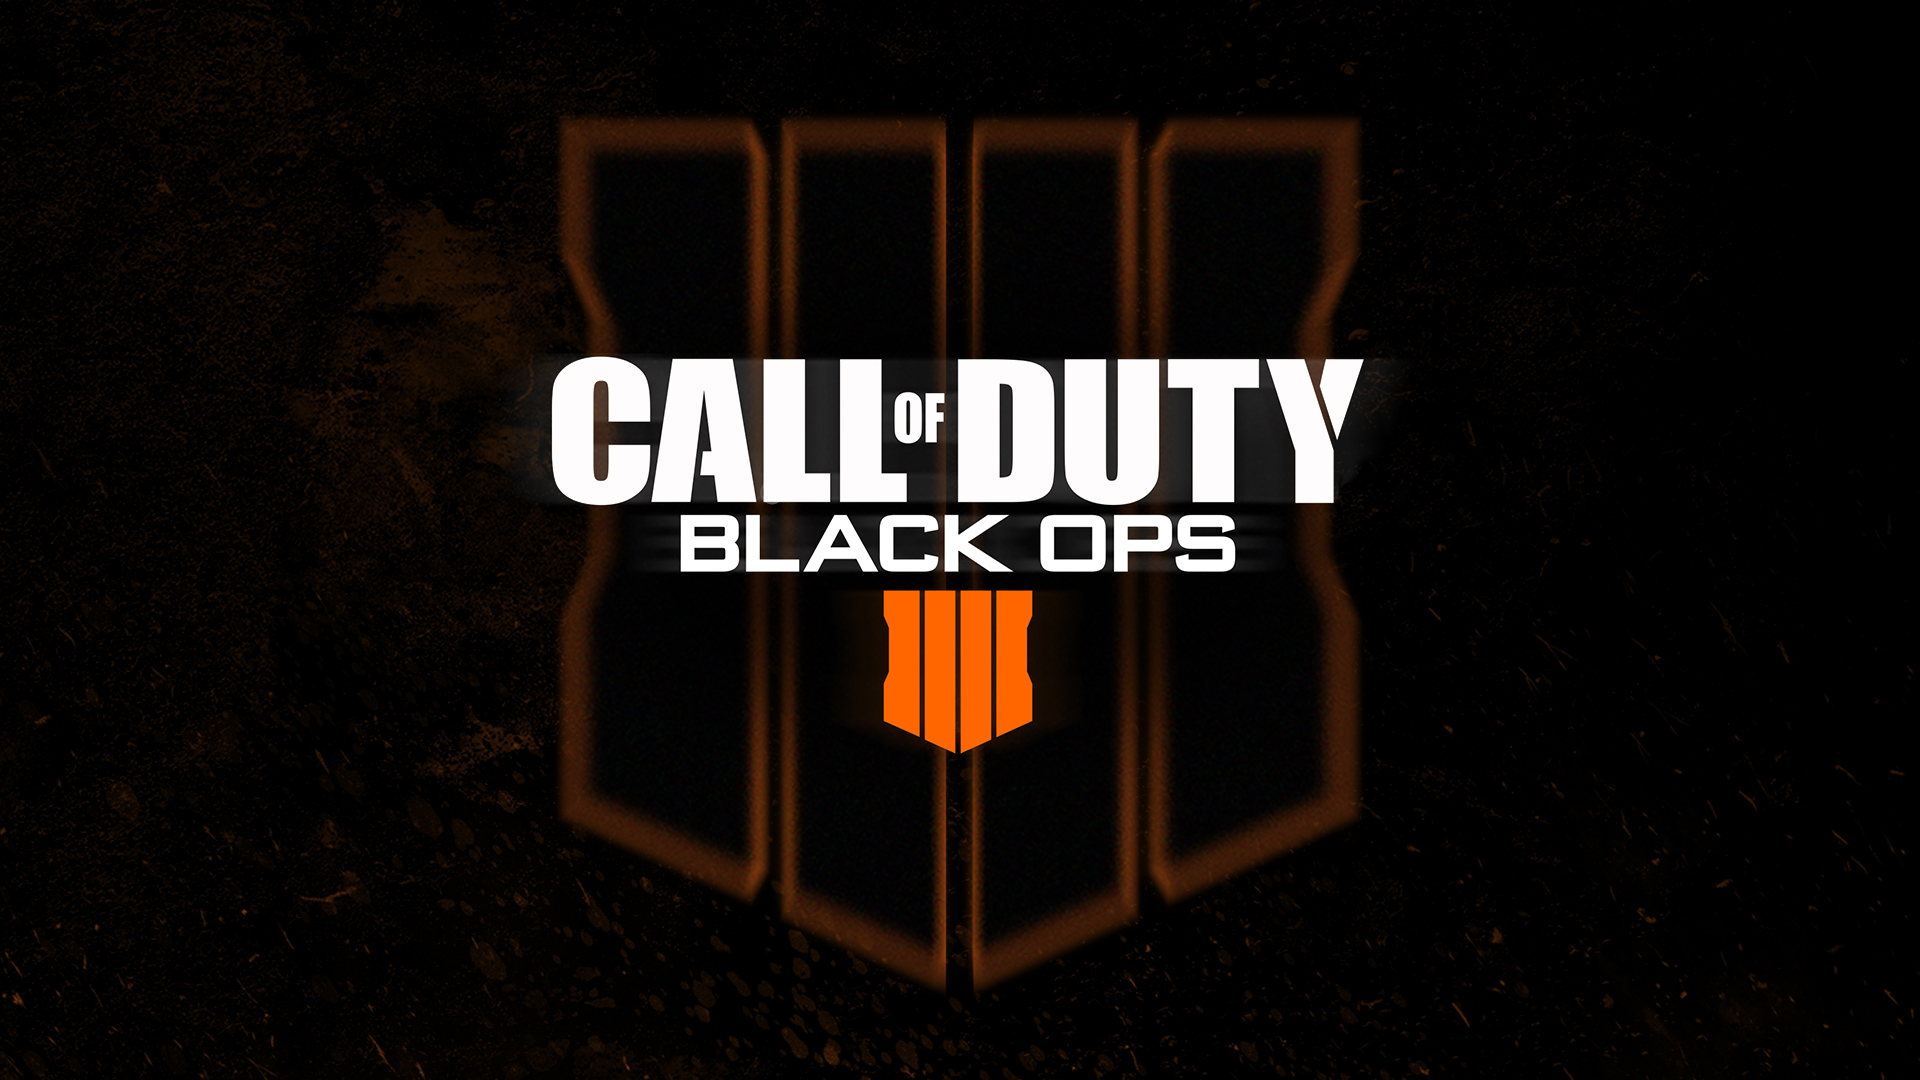 Call Of Duty Black Ops 4 Hd Games 4k Wallpapers Images Backgrounds Photos And Pictures